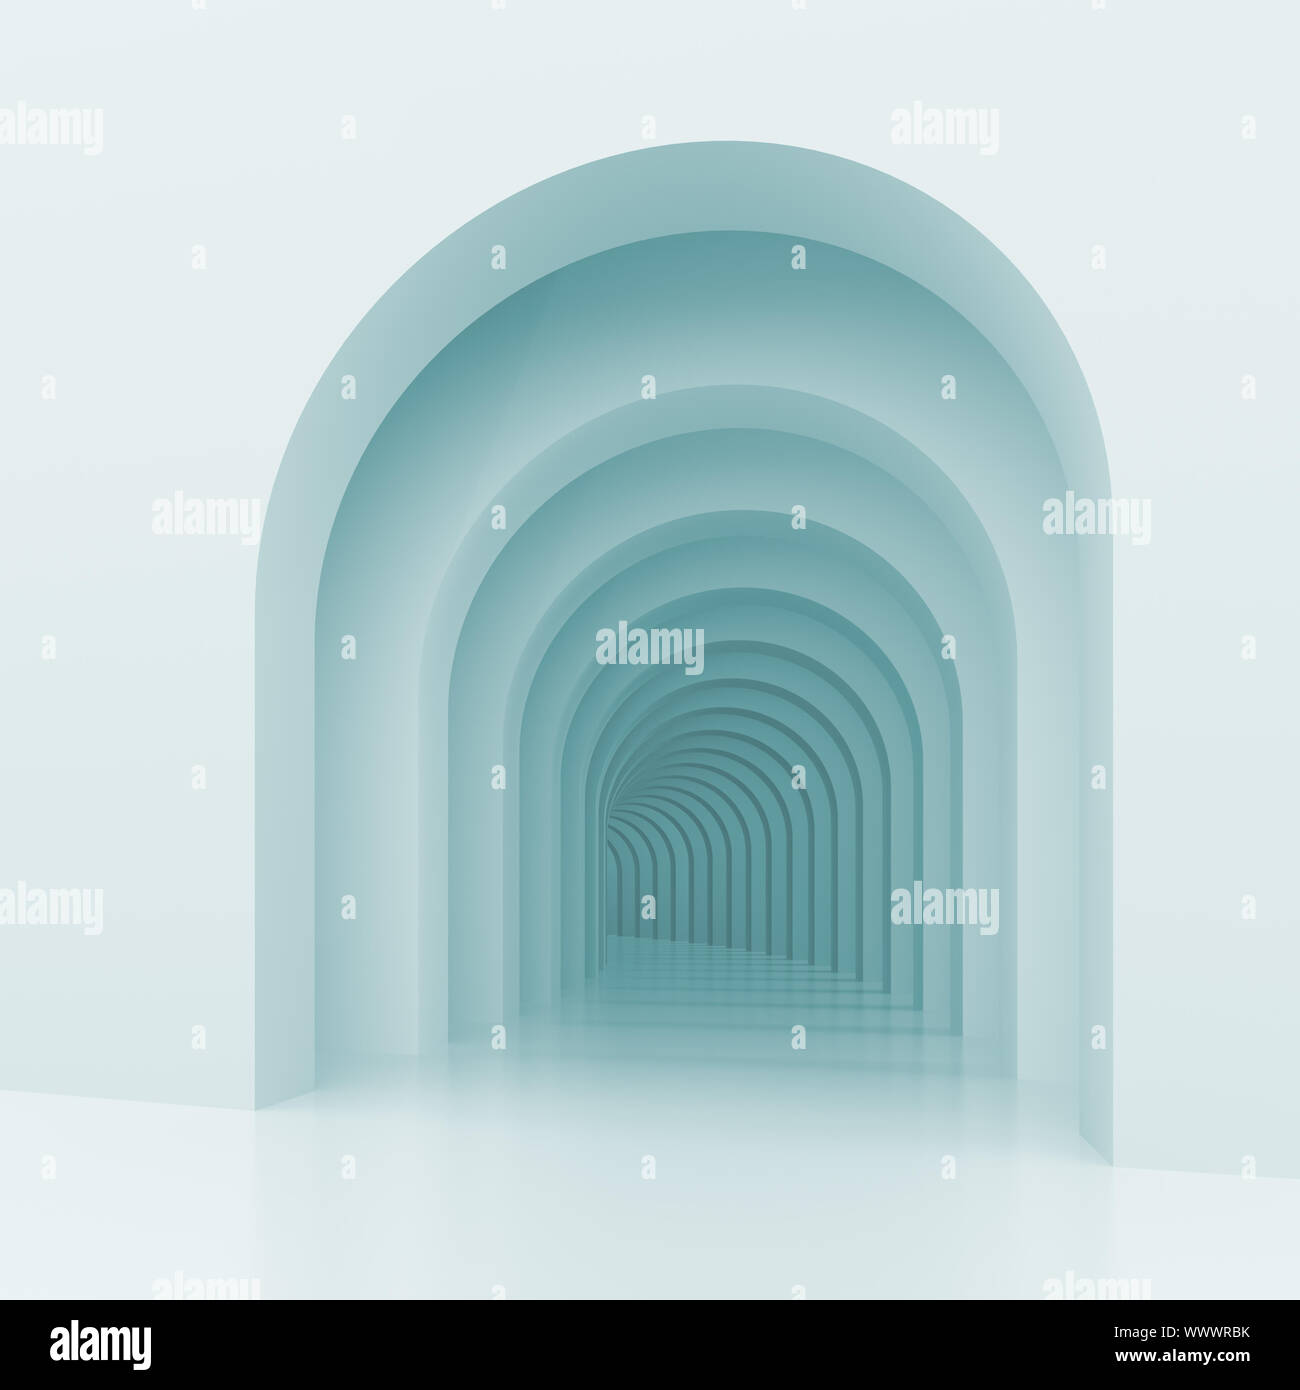 3d Illustration of Architectural Background with Arches Stock Photo